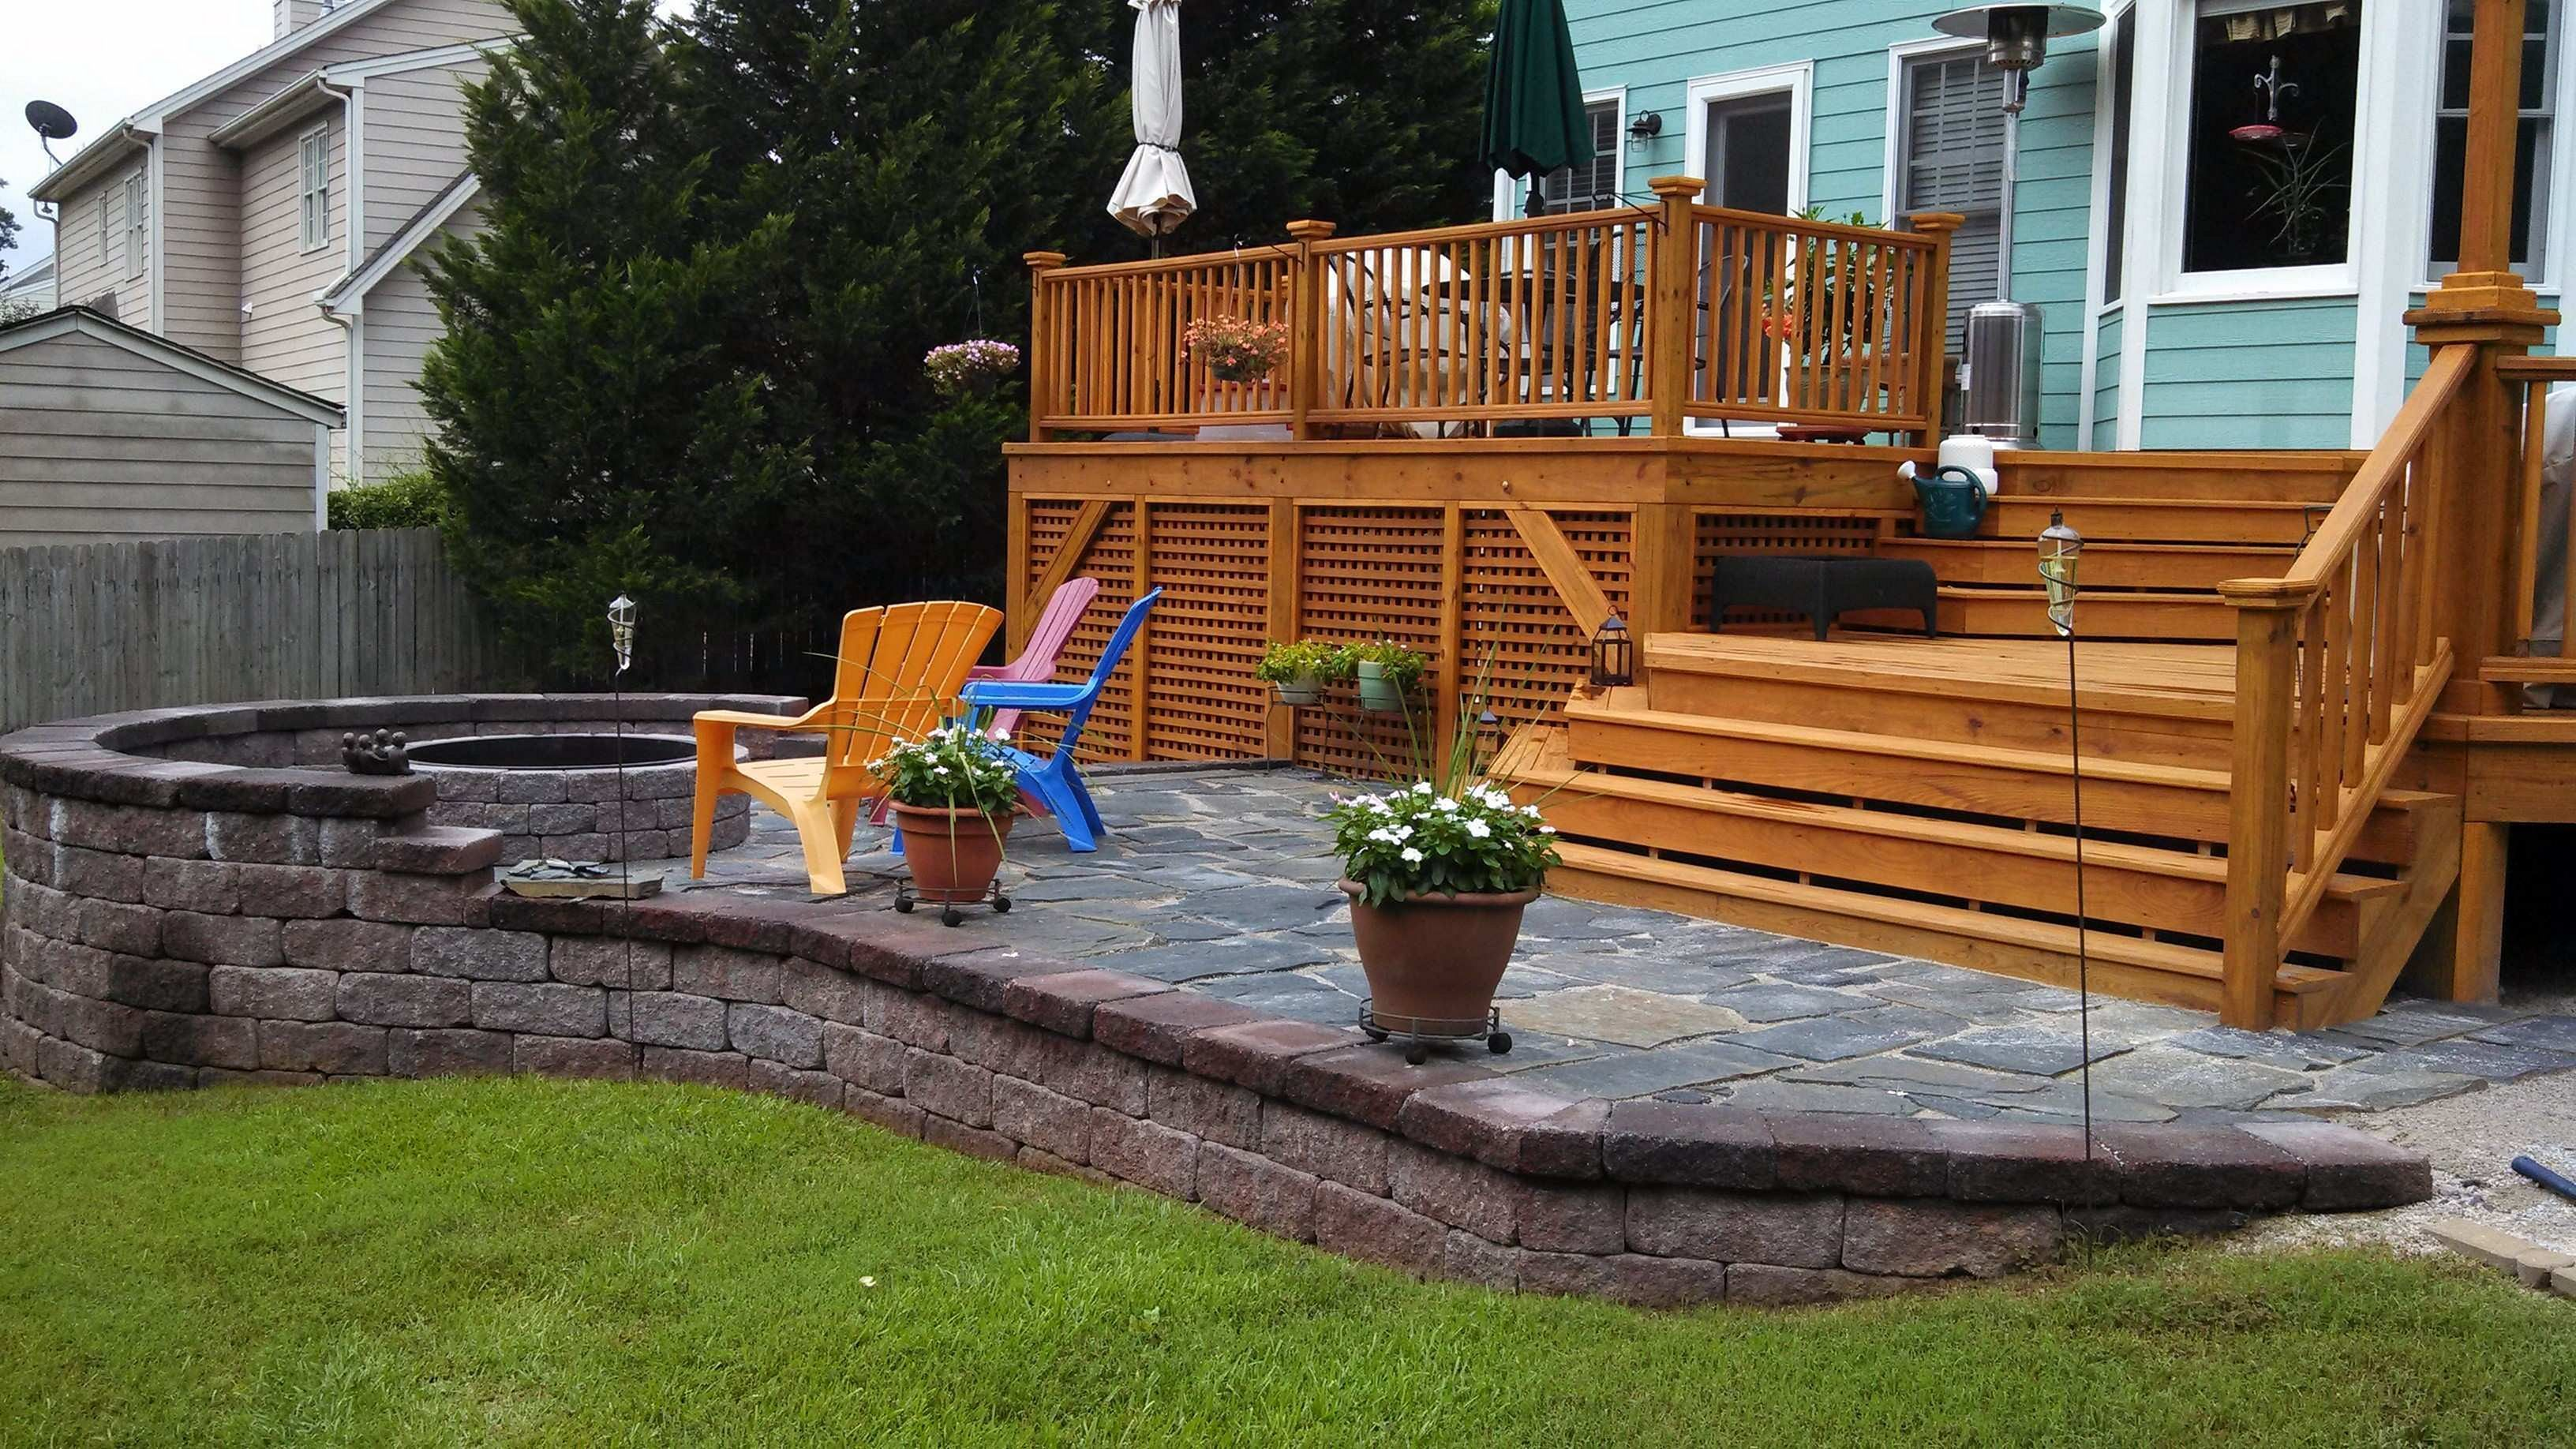 25 Gorgeous Wood Patio Ideas For Backyard Decoration On A Budget